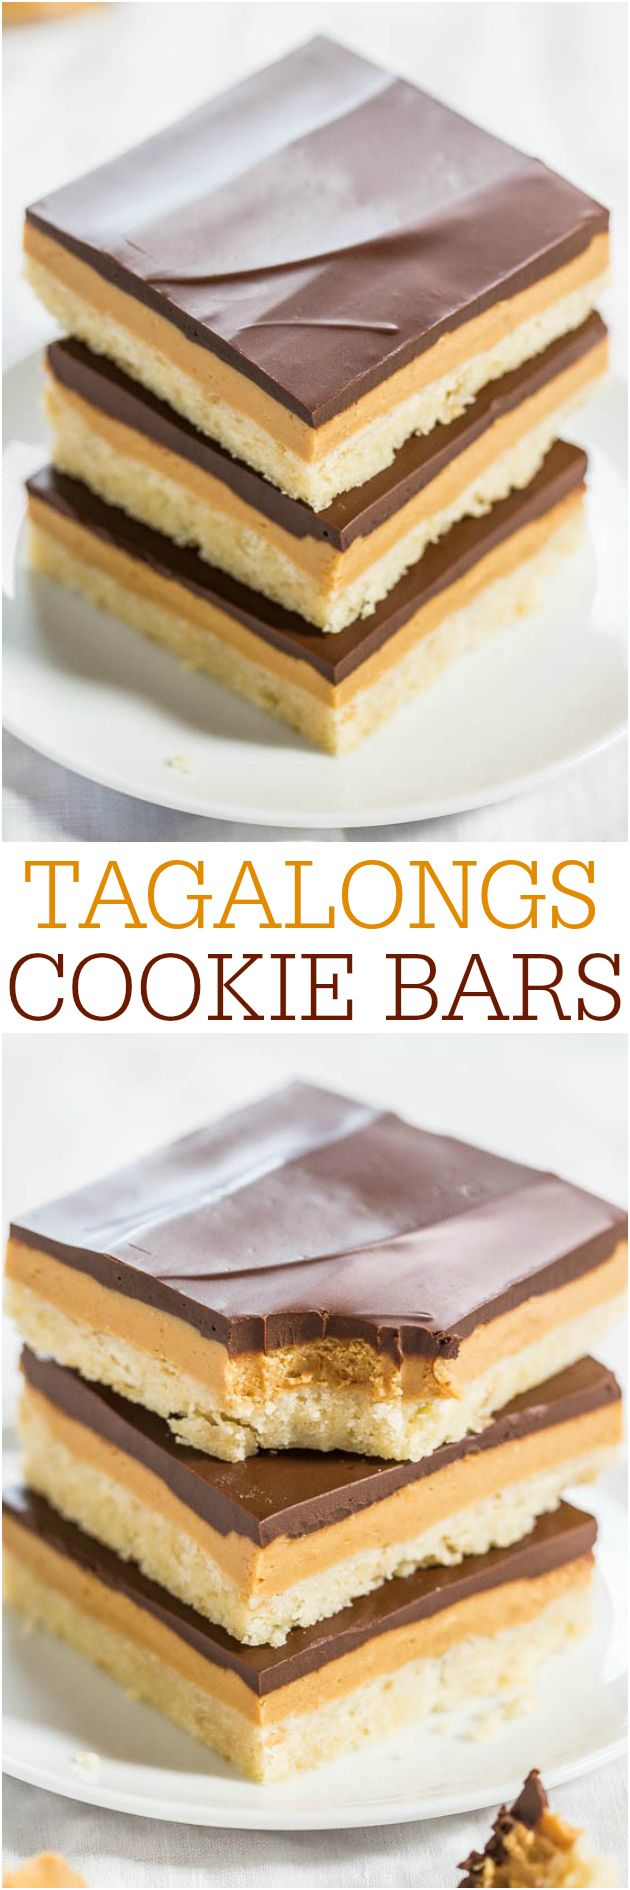 Tagalongs Cookie Bars - Say hello to year-round Girl Scout Cookie Season with these delish bars! All the flavors of the classic cookies in easy bar form!!